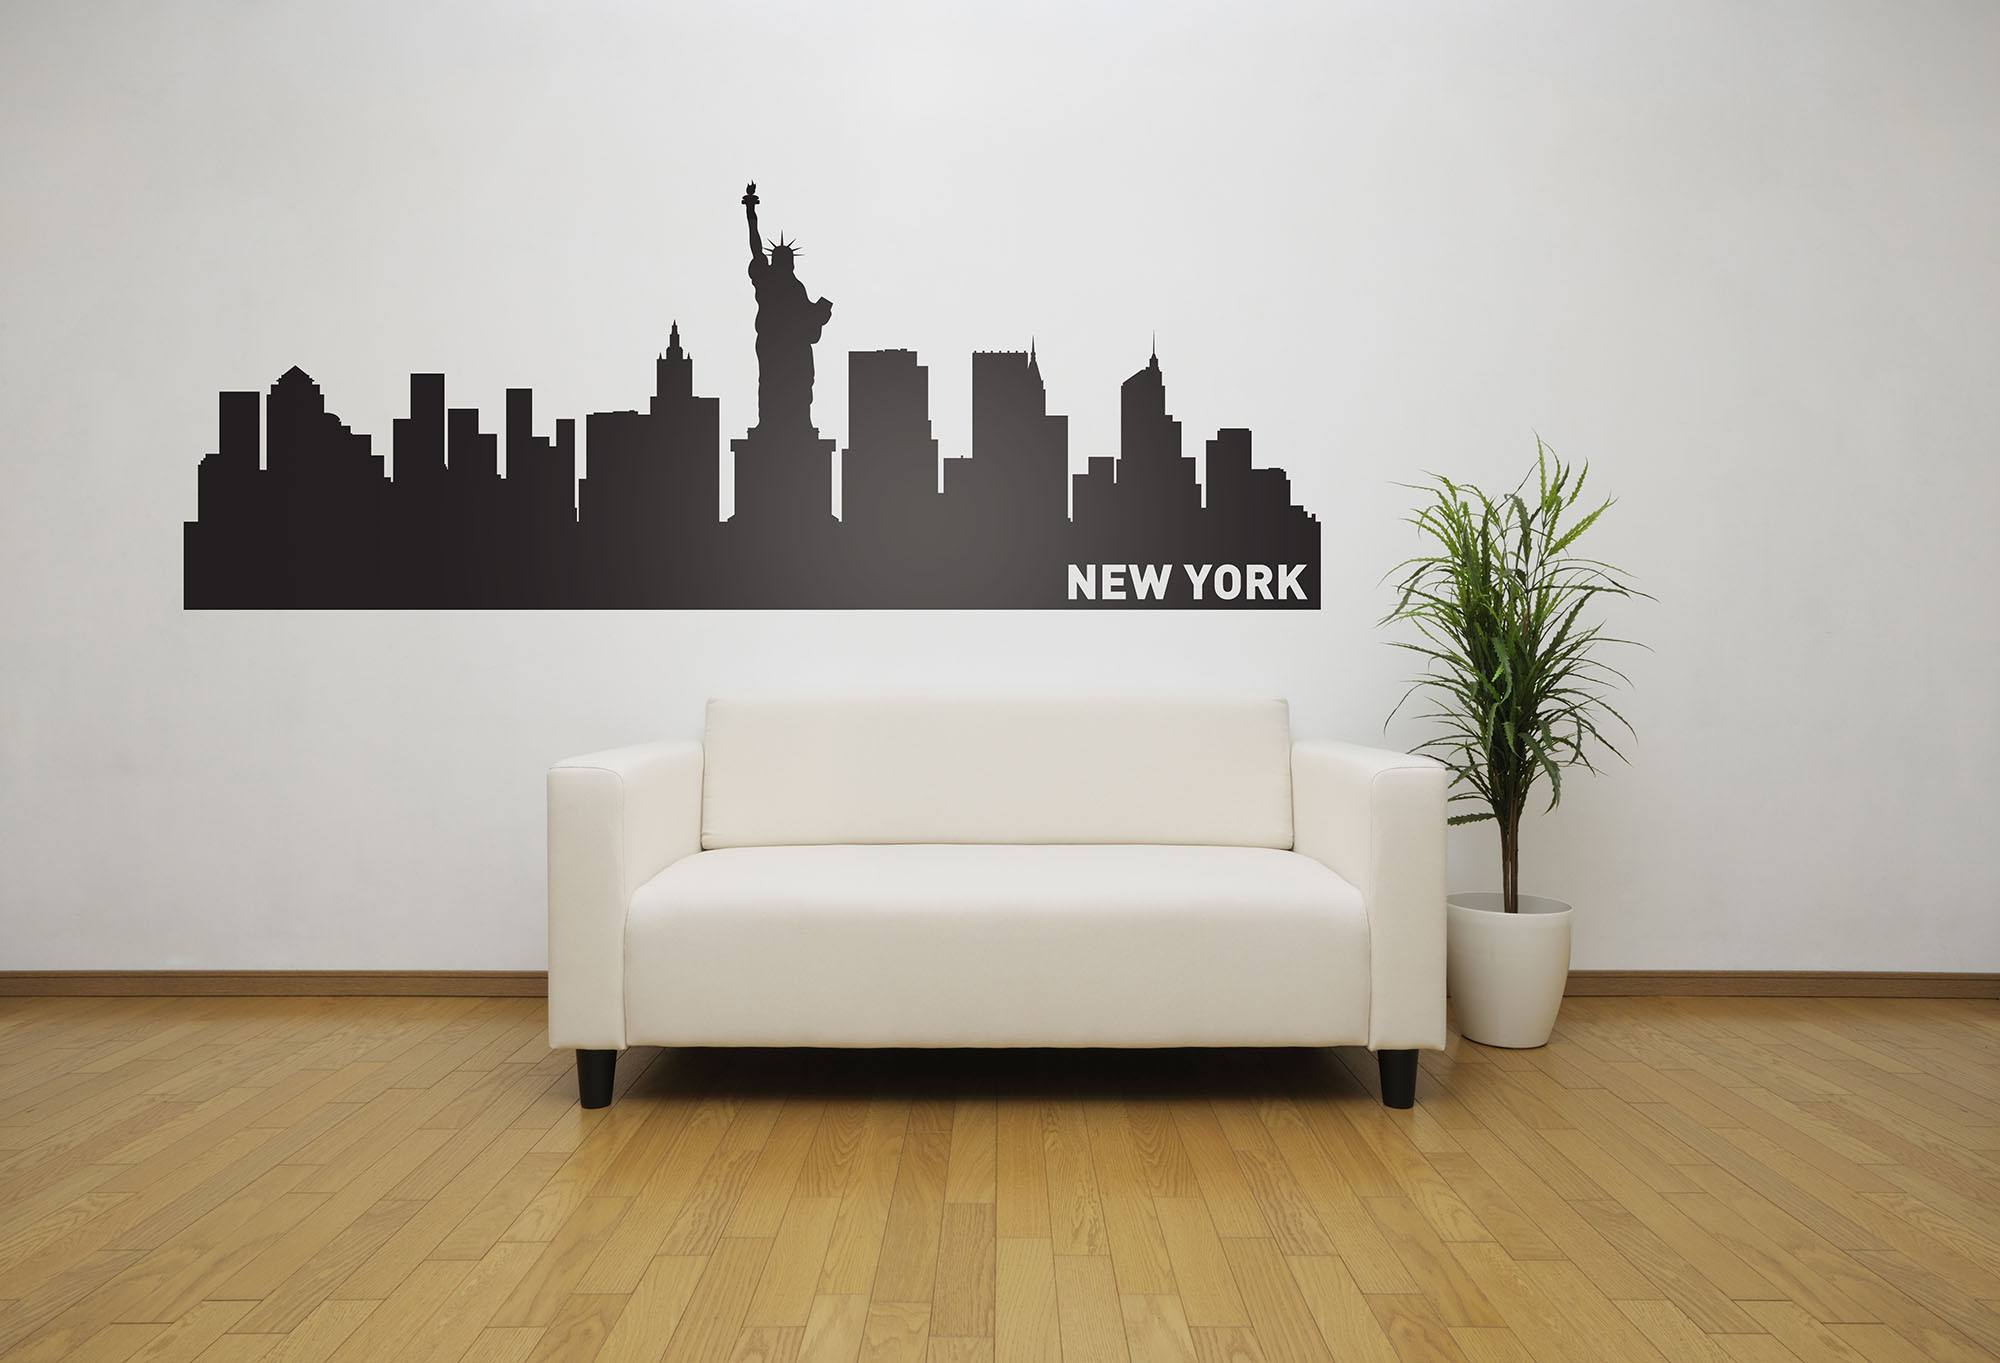 New York City Skyline Vinyl Wall Decal The Personalized Gift Co